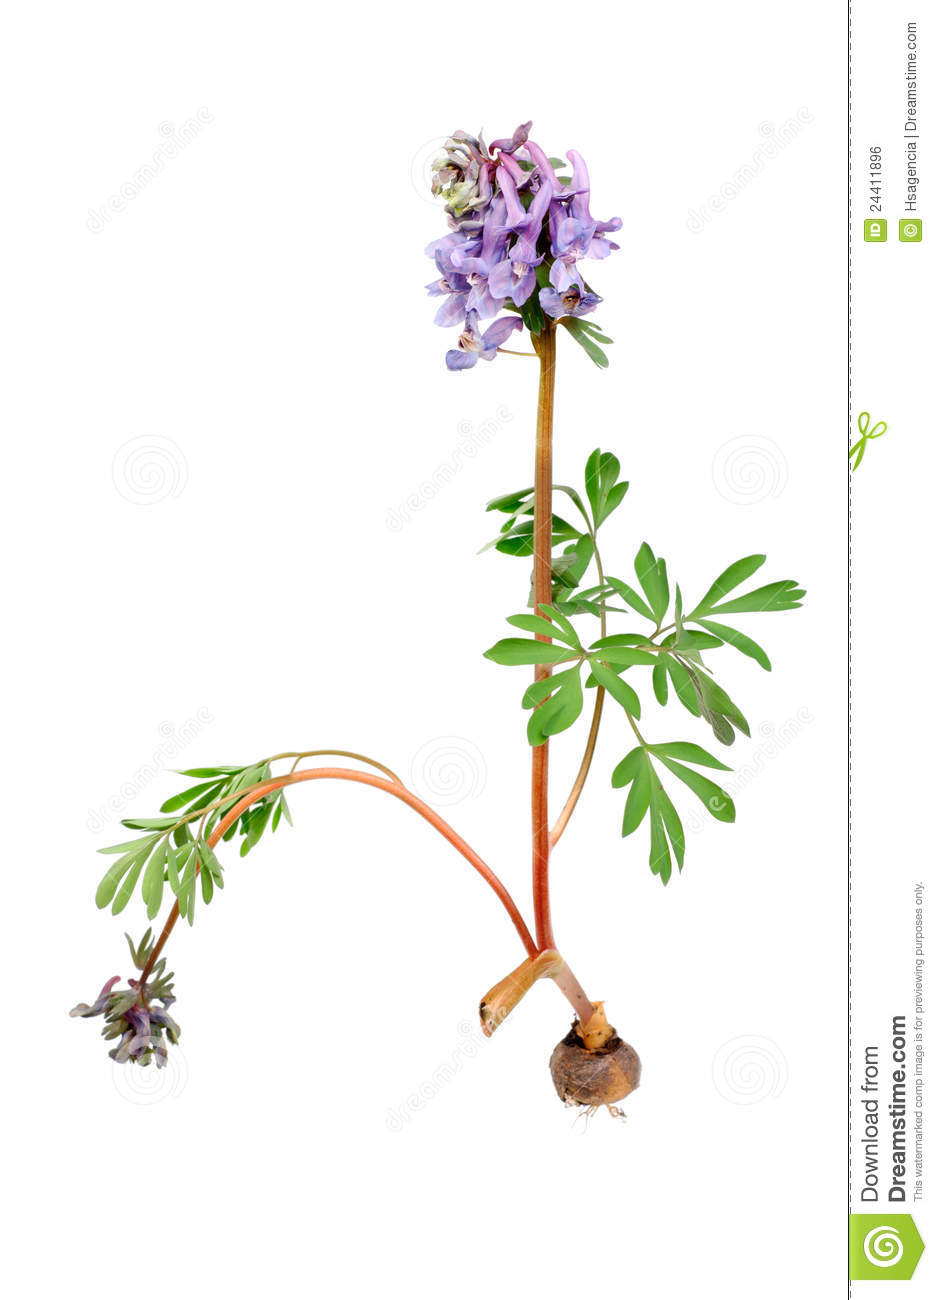 halleri del corydalis de la flor con el bulbo de la ra z imagen de archivo libre de regal as. Black Bedroom Furniture Sets. Home Design Ideas